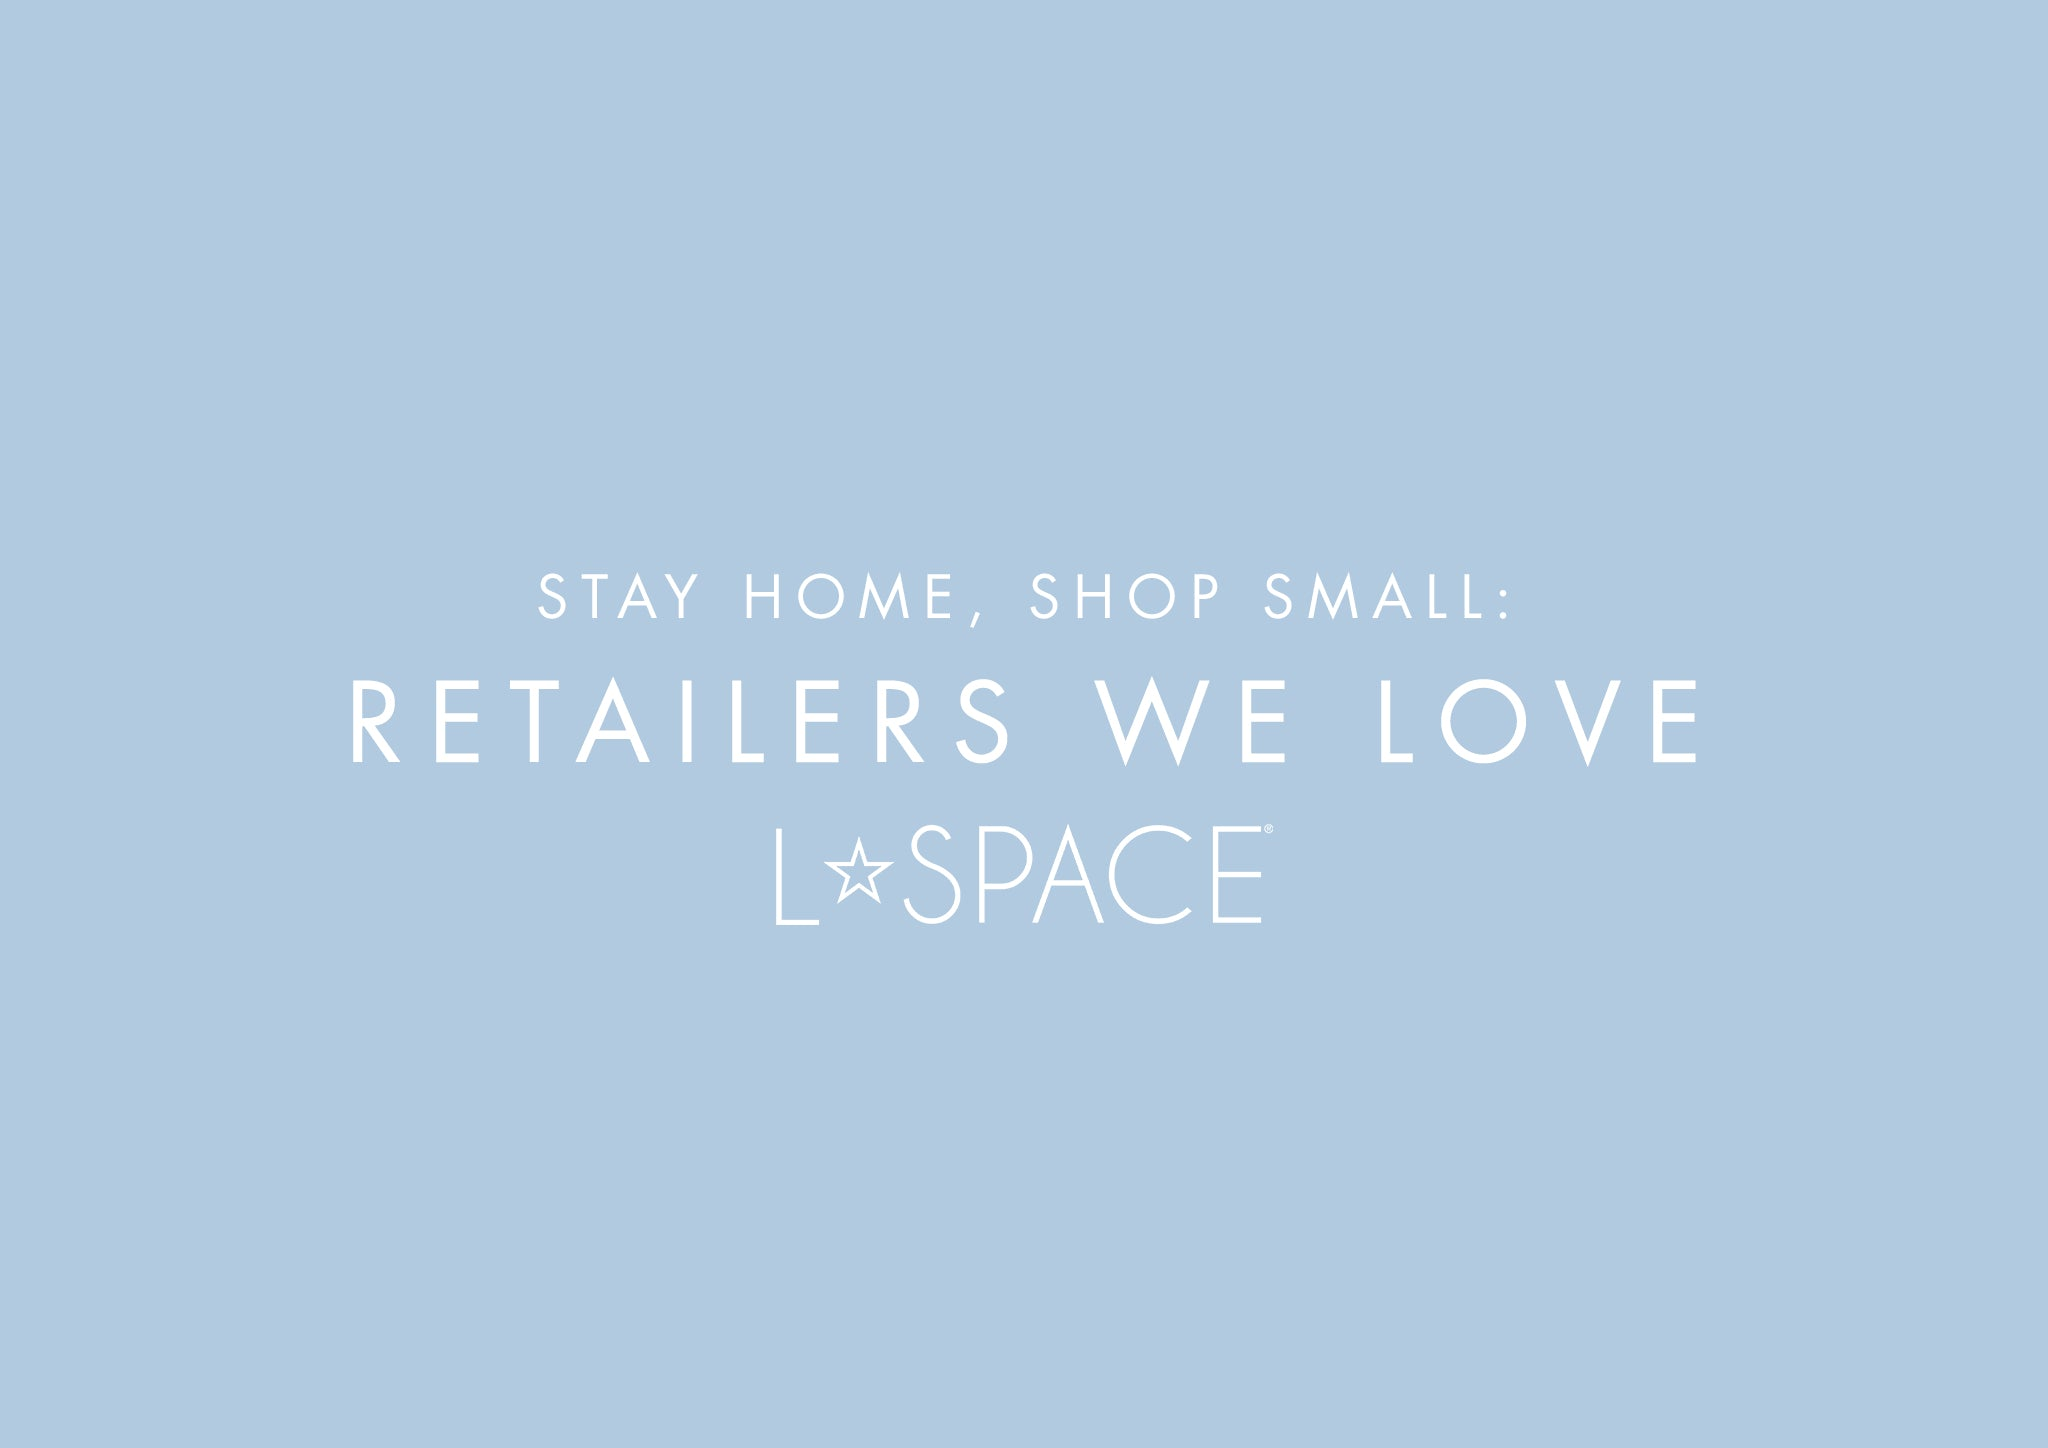 Stay Home, Shop Small: Retailers We Love